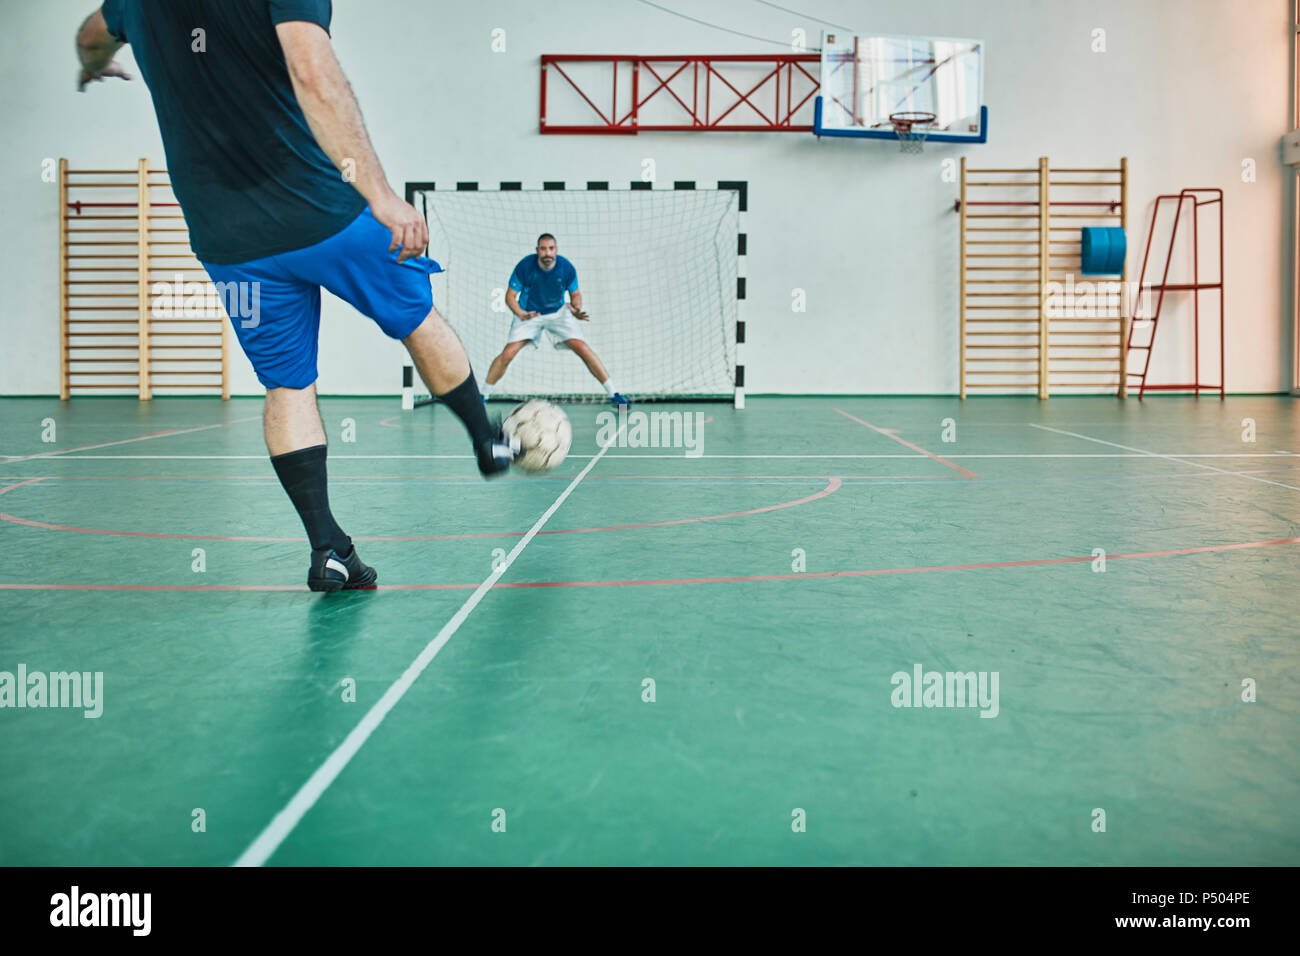 Two men playing indoor soccer shooting at goal - Stock Image